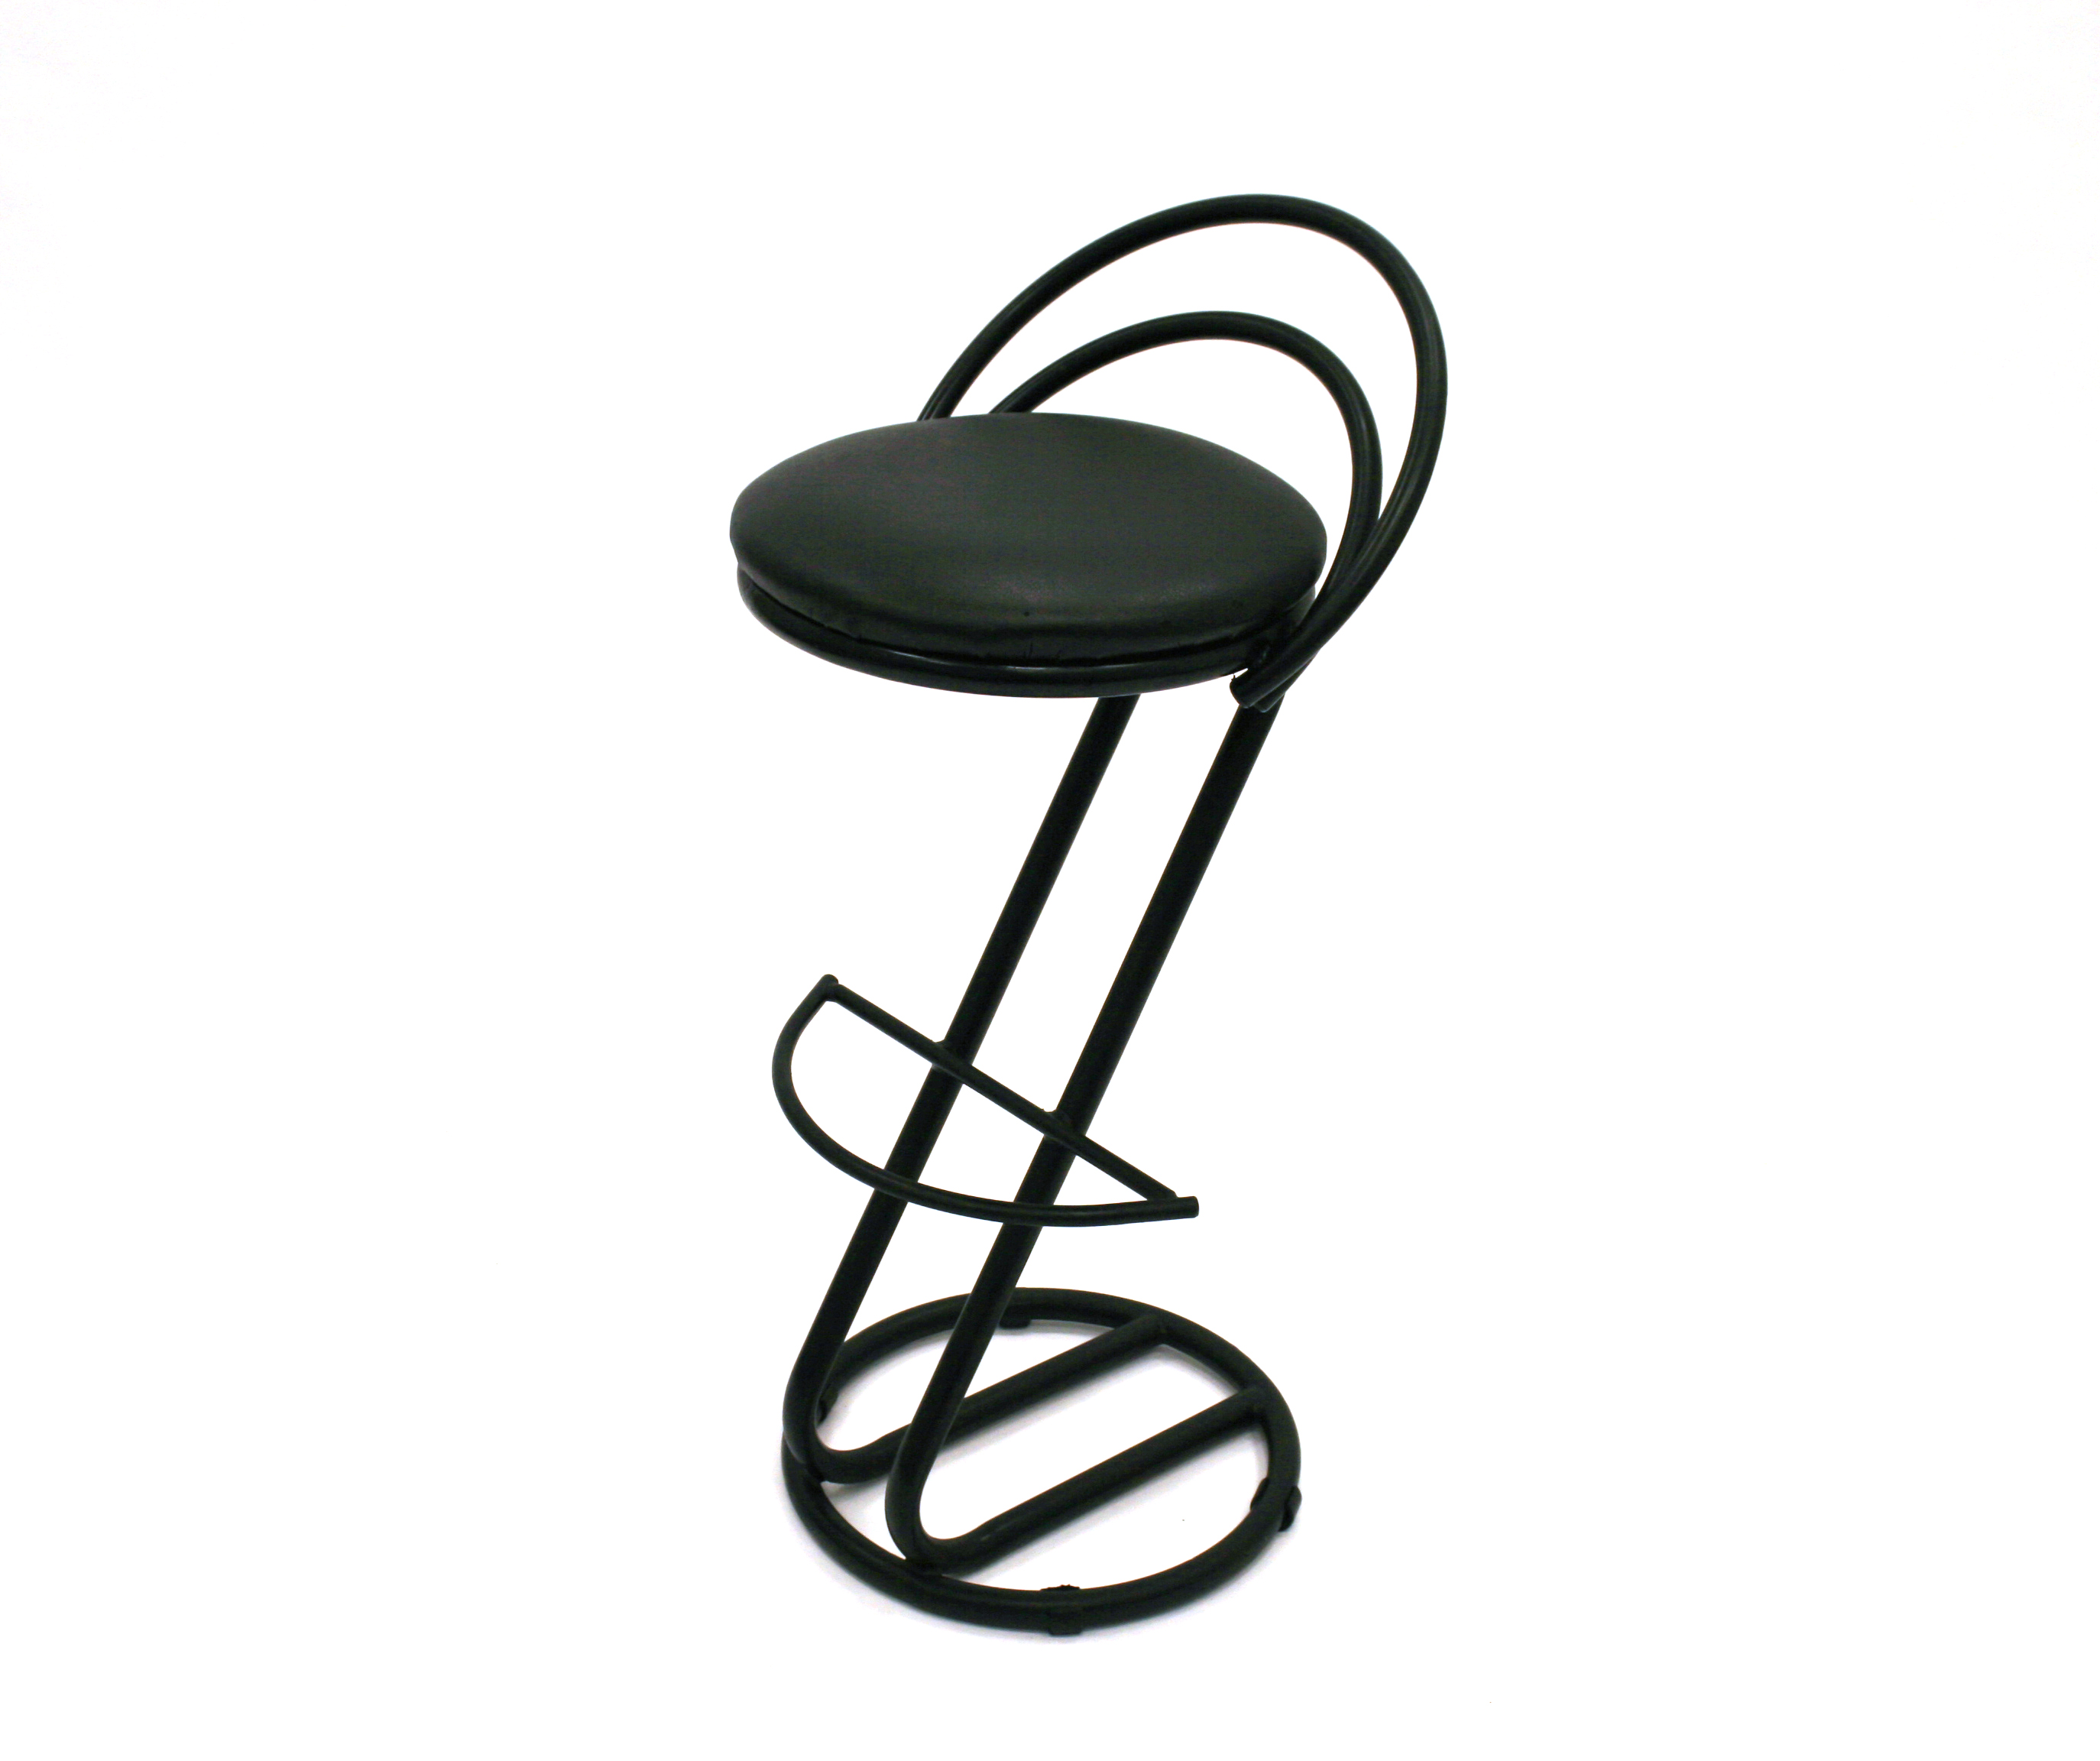 Black Cobra Bar Stool for Hire - Events, Exhibitions - BE Event Hire